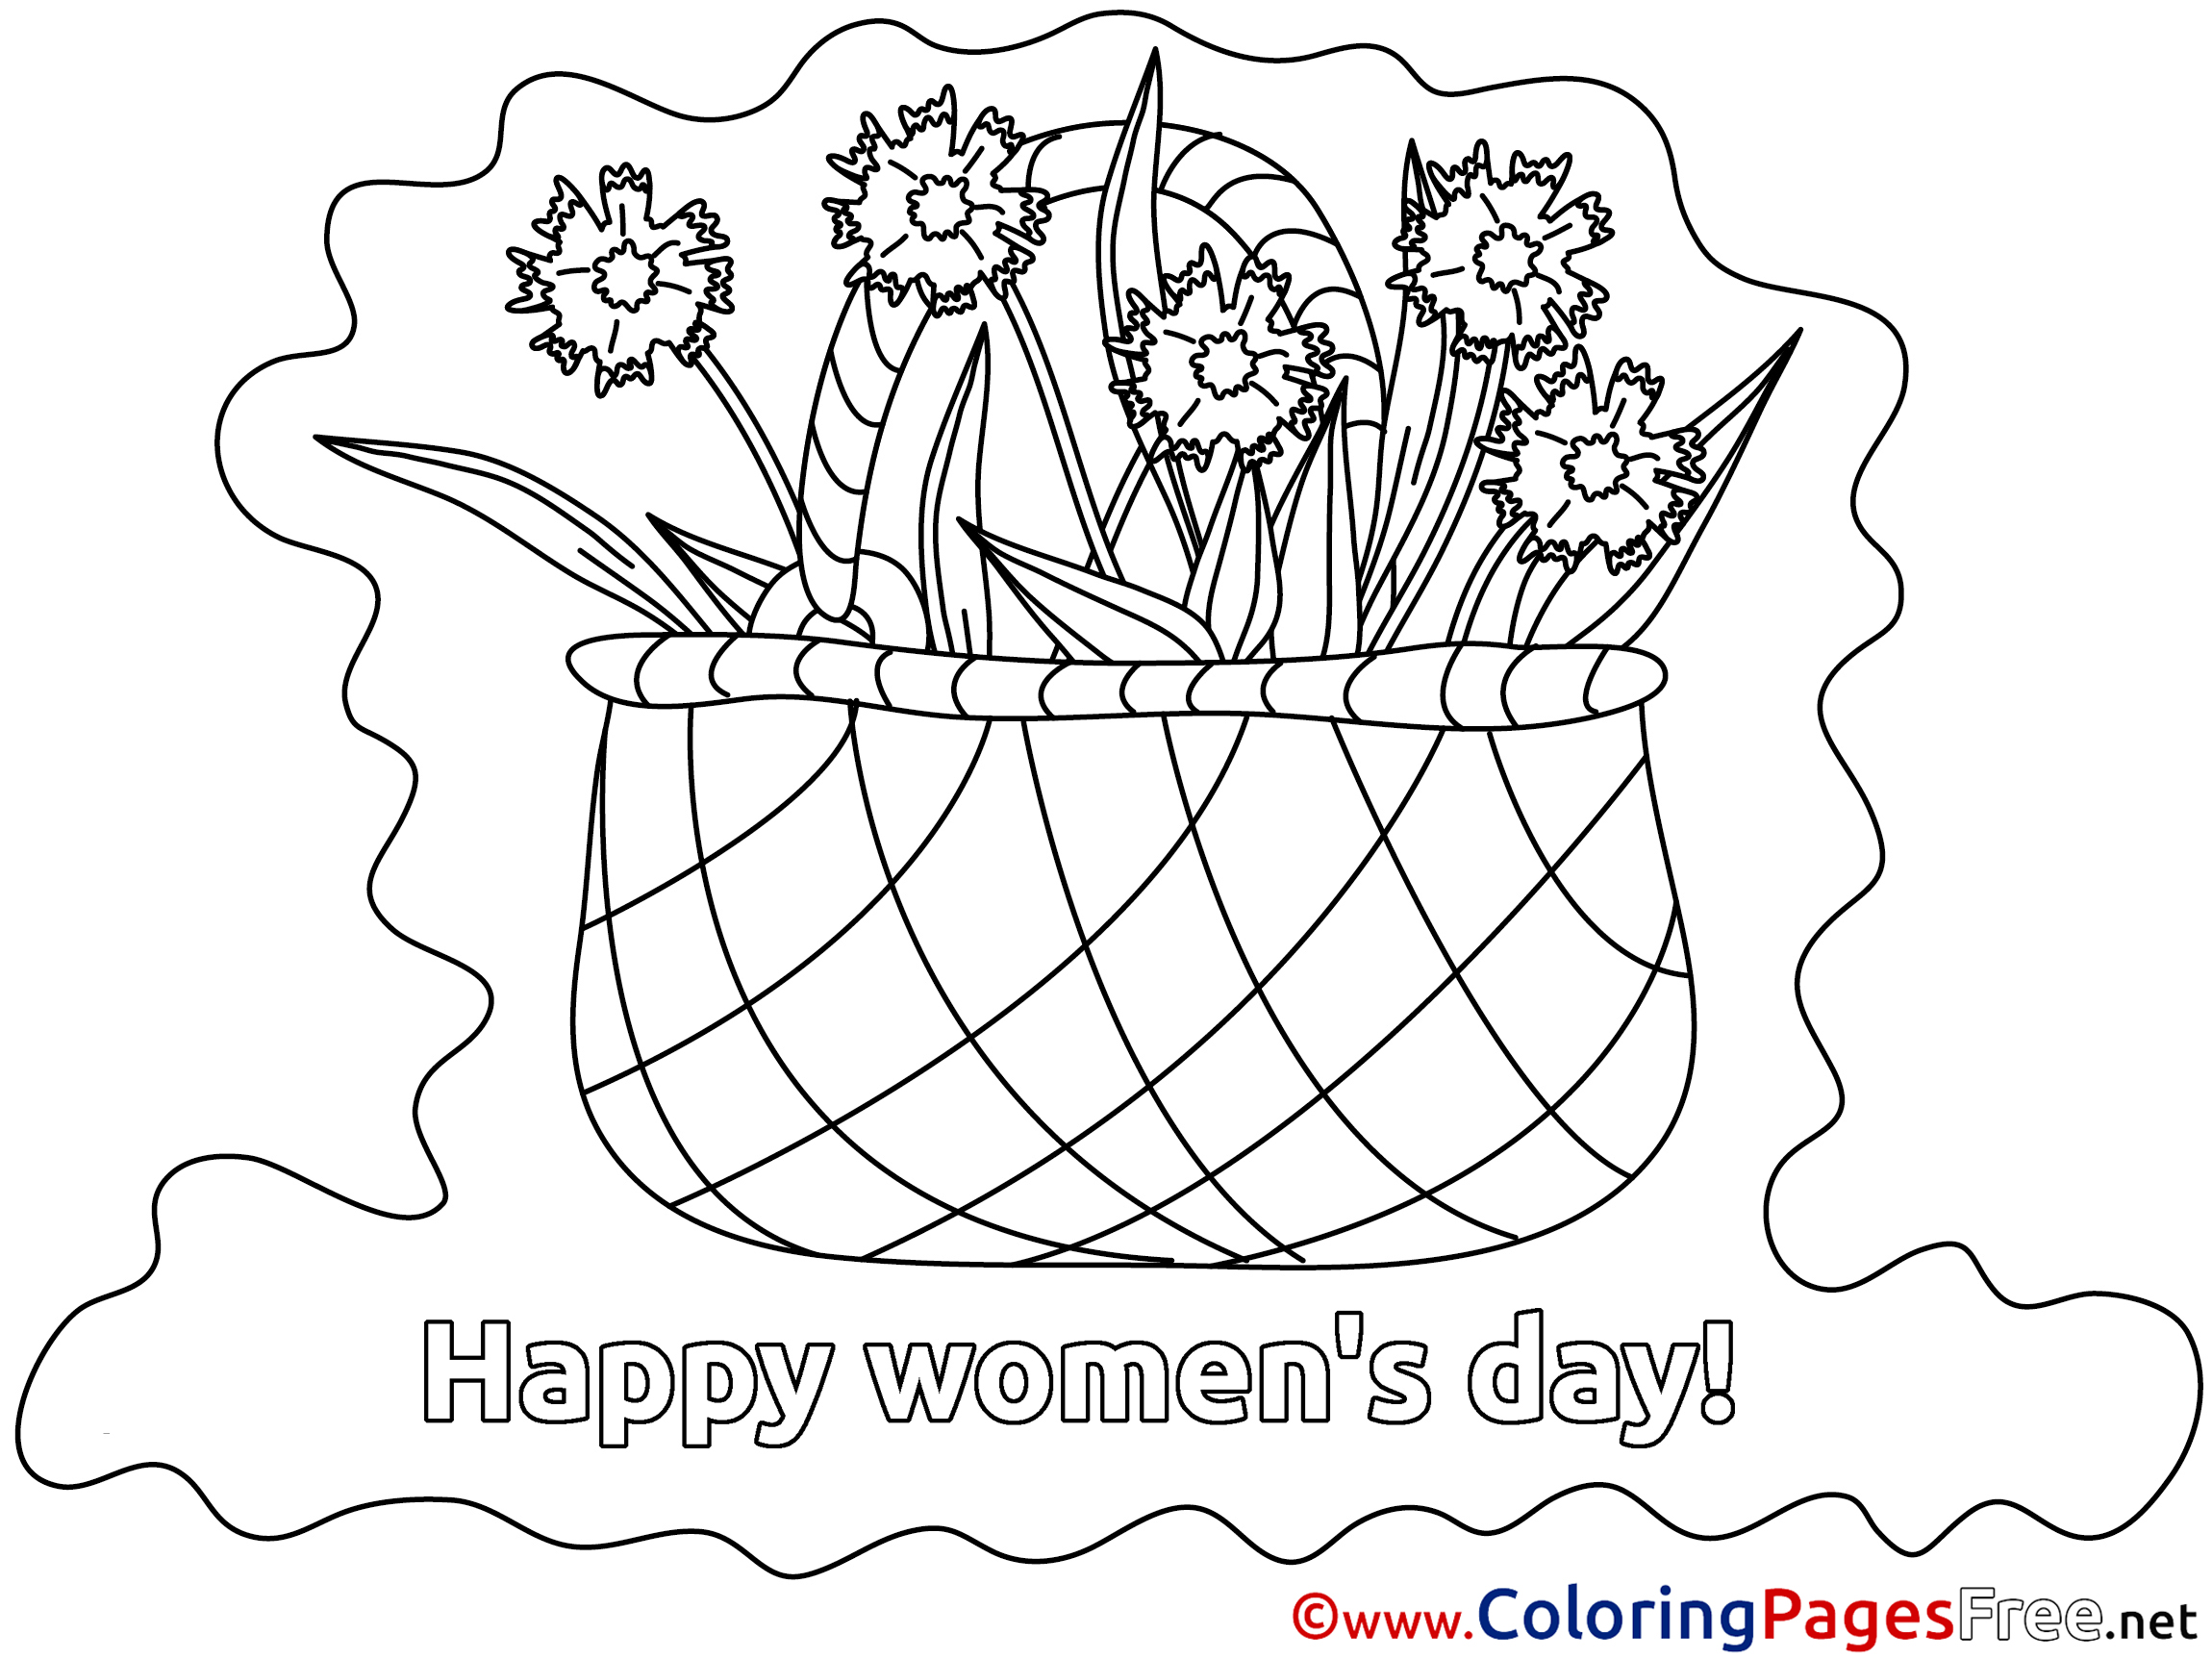 Empty Basket Coloring Page - Coloring Home | 1725x2300